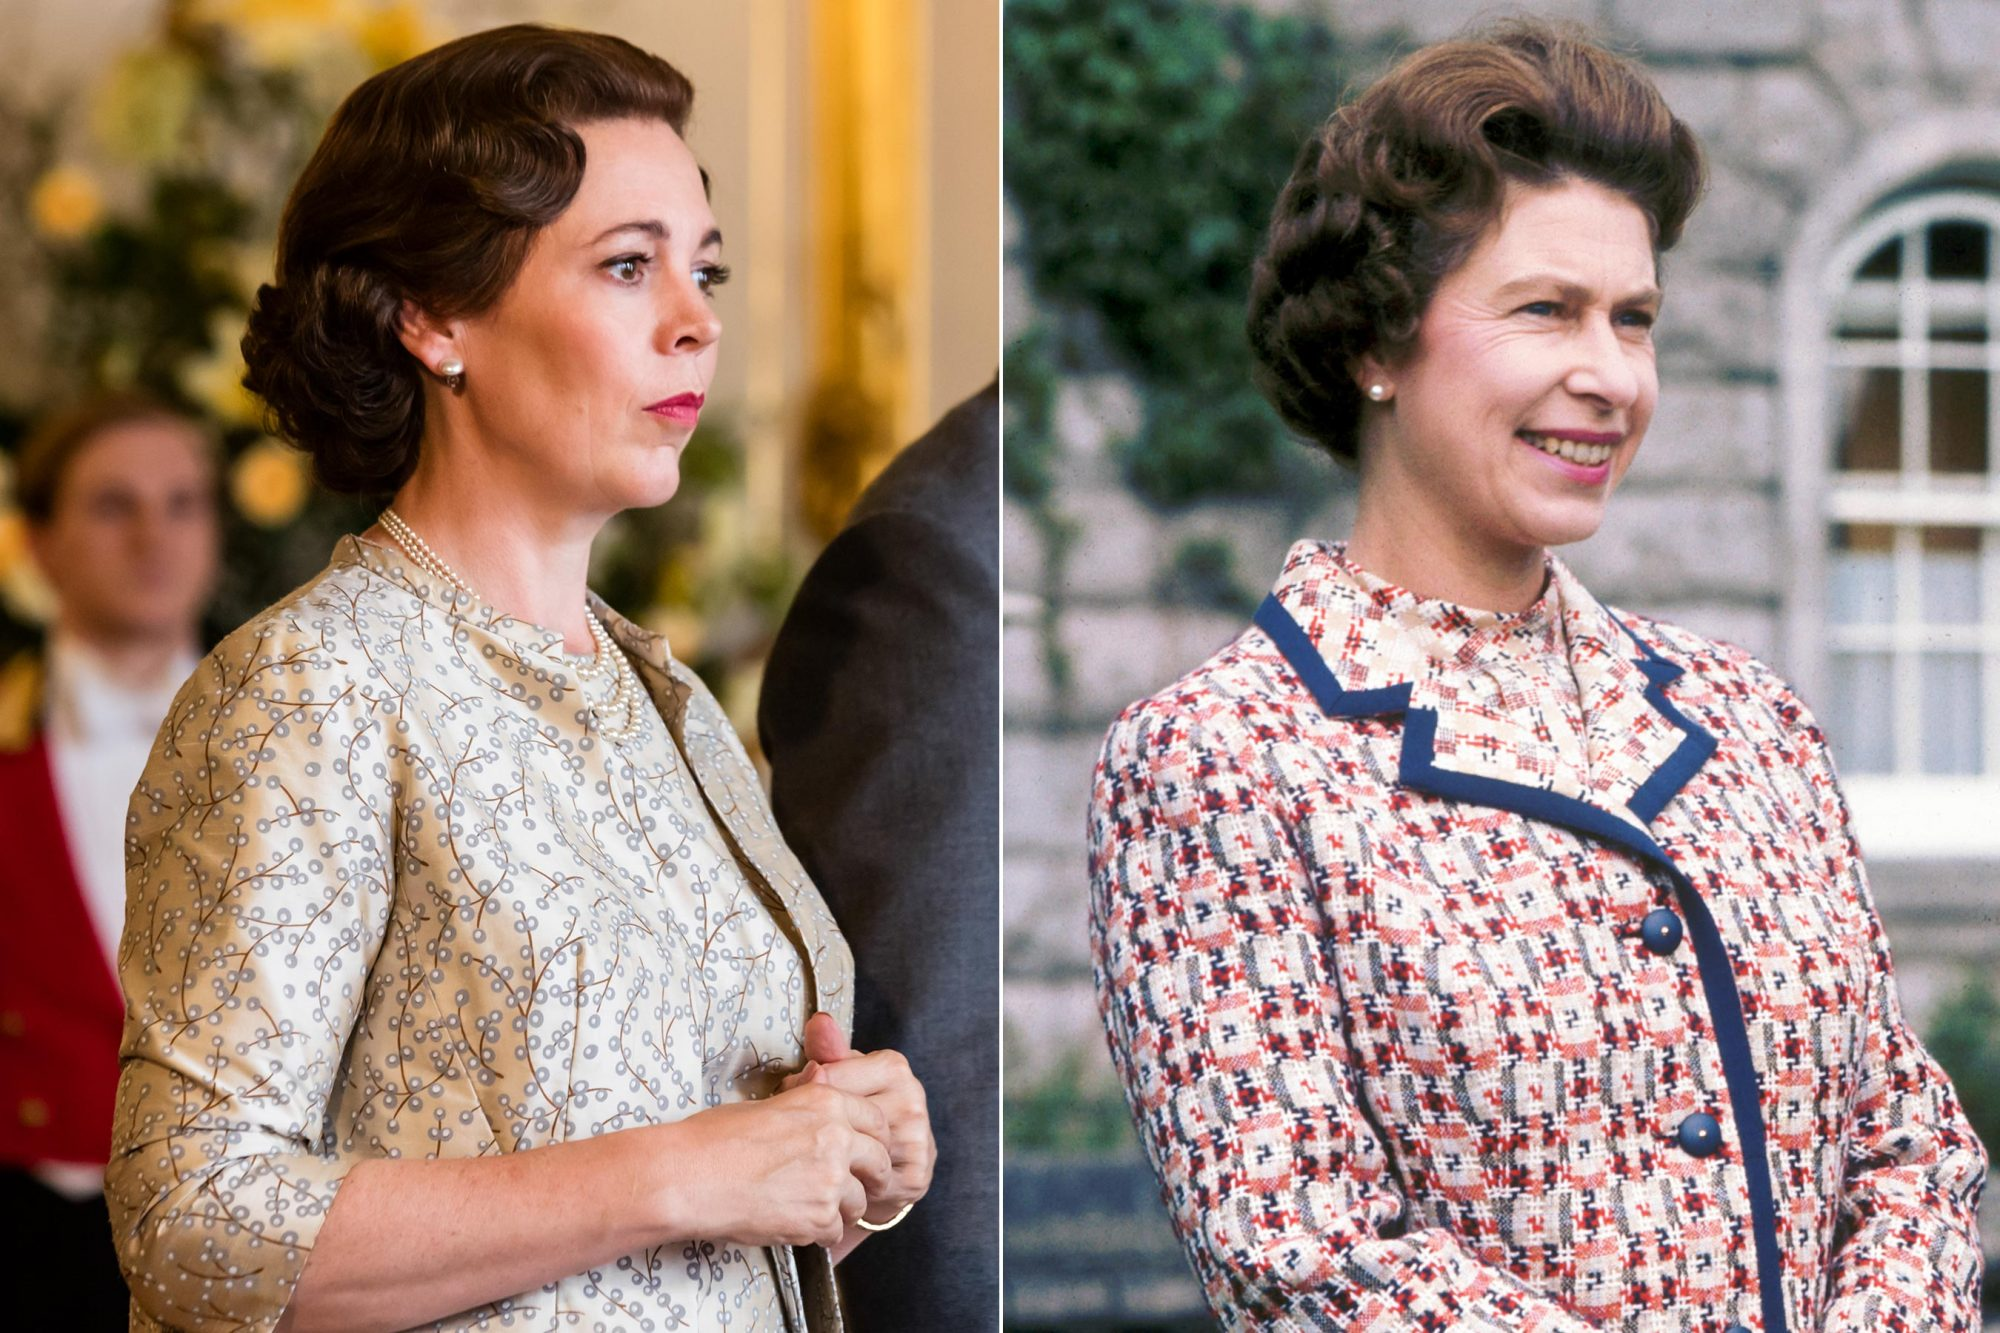 'The Crown' star Olivia Colman accidentally 'stumbled' into a meeting with the real Queen